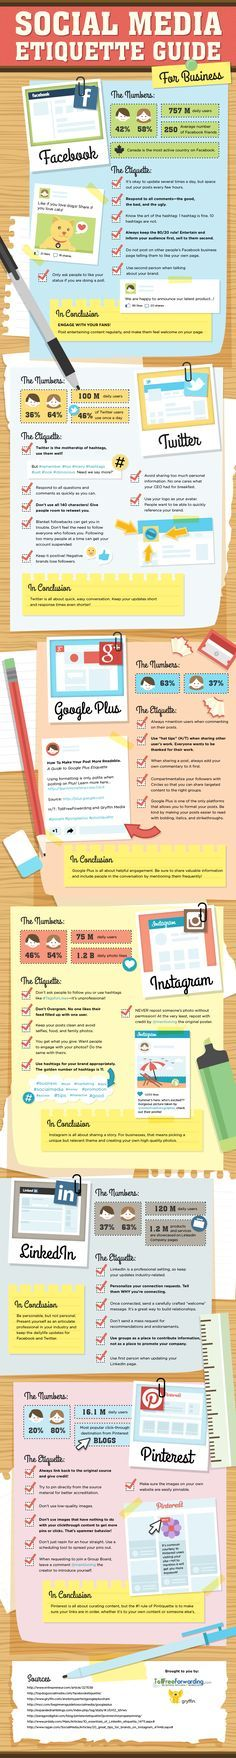 GooglePlus, #Twitter, Instagram, Facebook, LinkedIn #Pinterest - #SocialMedia Etiquette Guide For Business - #infographic #SMM